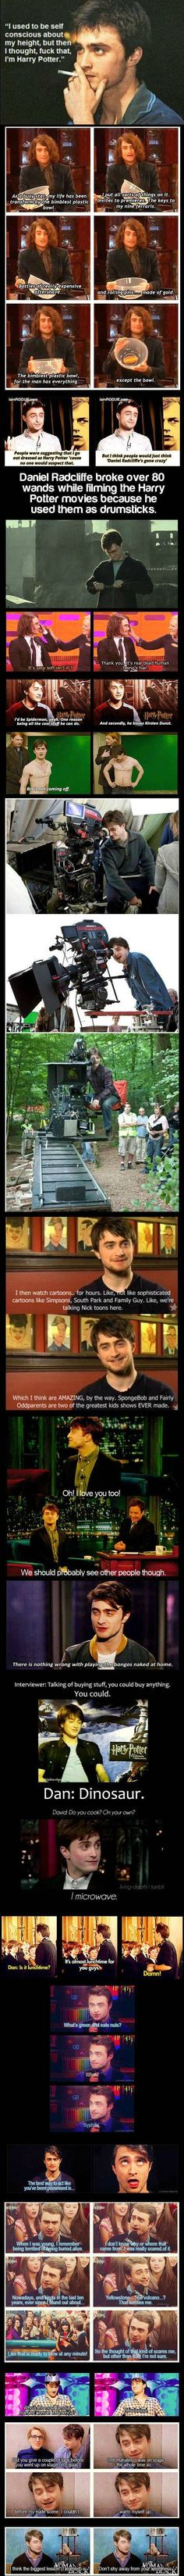 Daniel Radcliffe is like the female version of Jennifer Lawrence. - Imgur